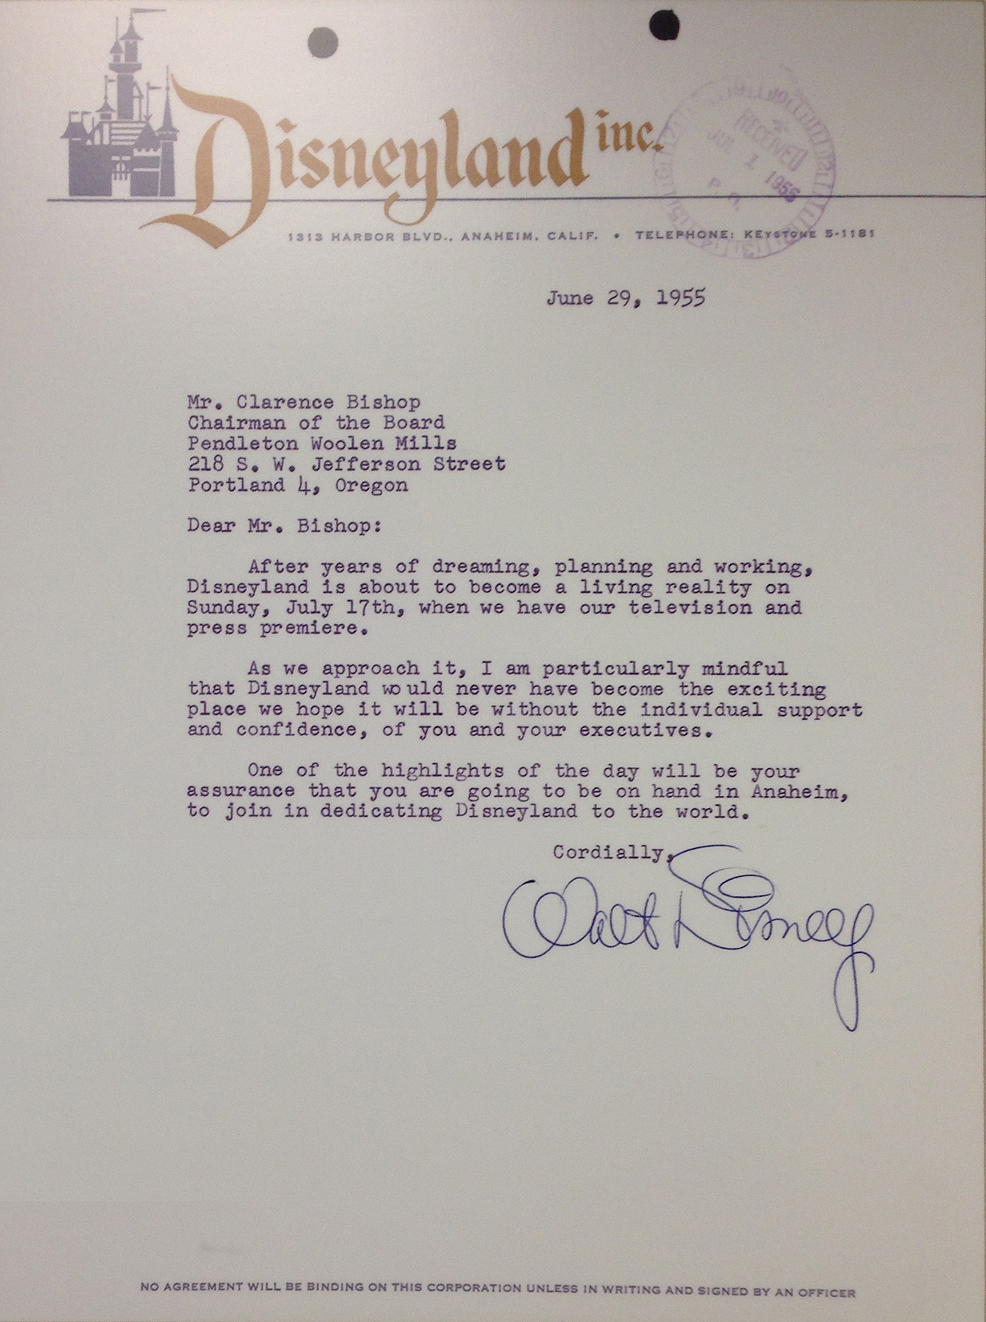 A 1955 letter from Walt Disney to Clarence Morton Bishop.